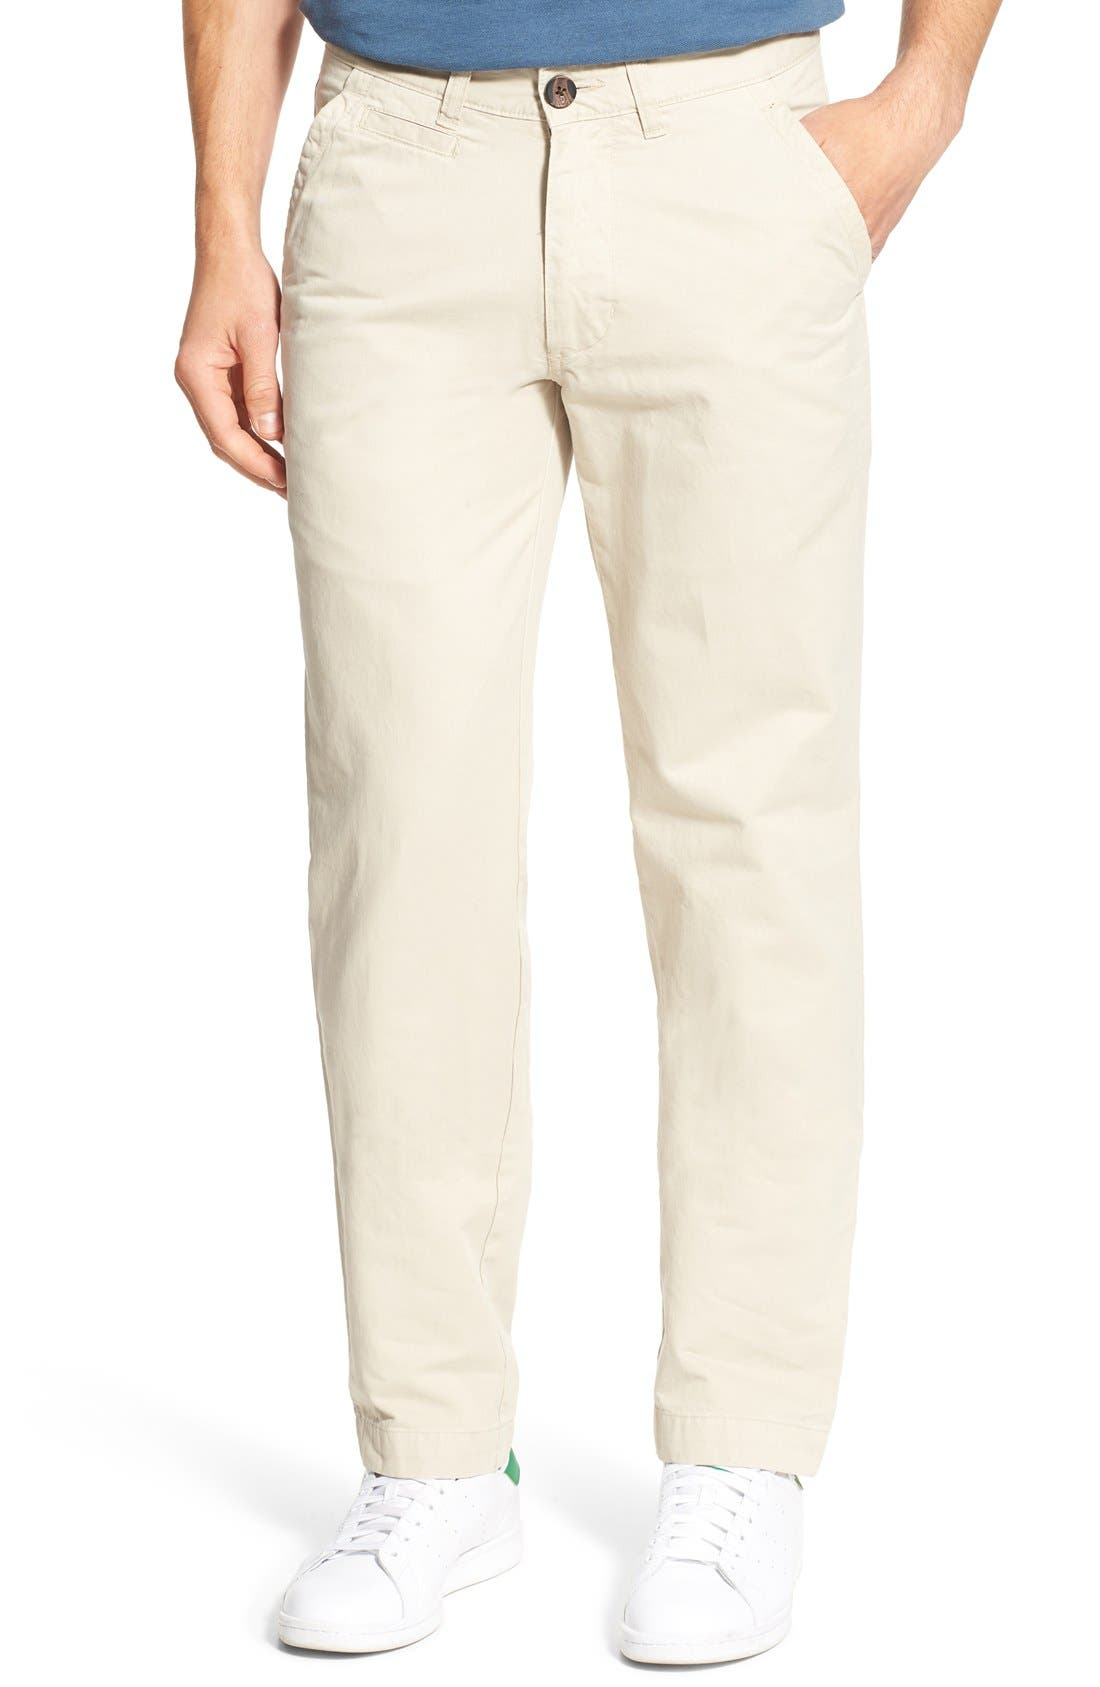 'Sahara' Trim Fit Vintage Washed Twill Chinos,                             Main thumbnail 1, color,